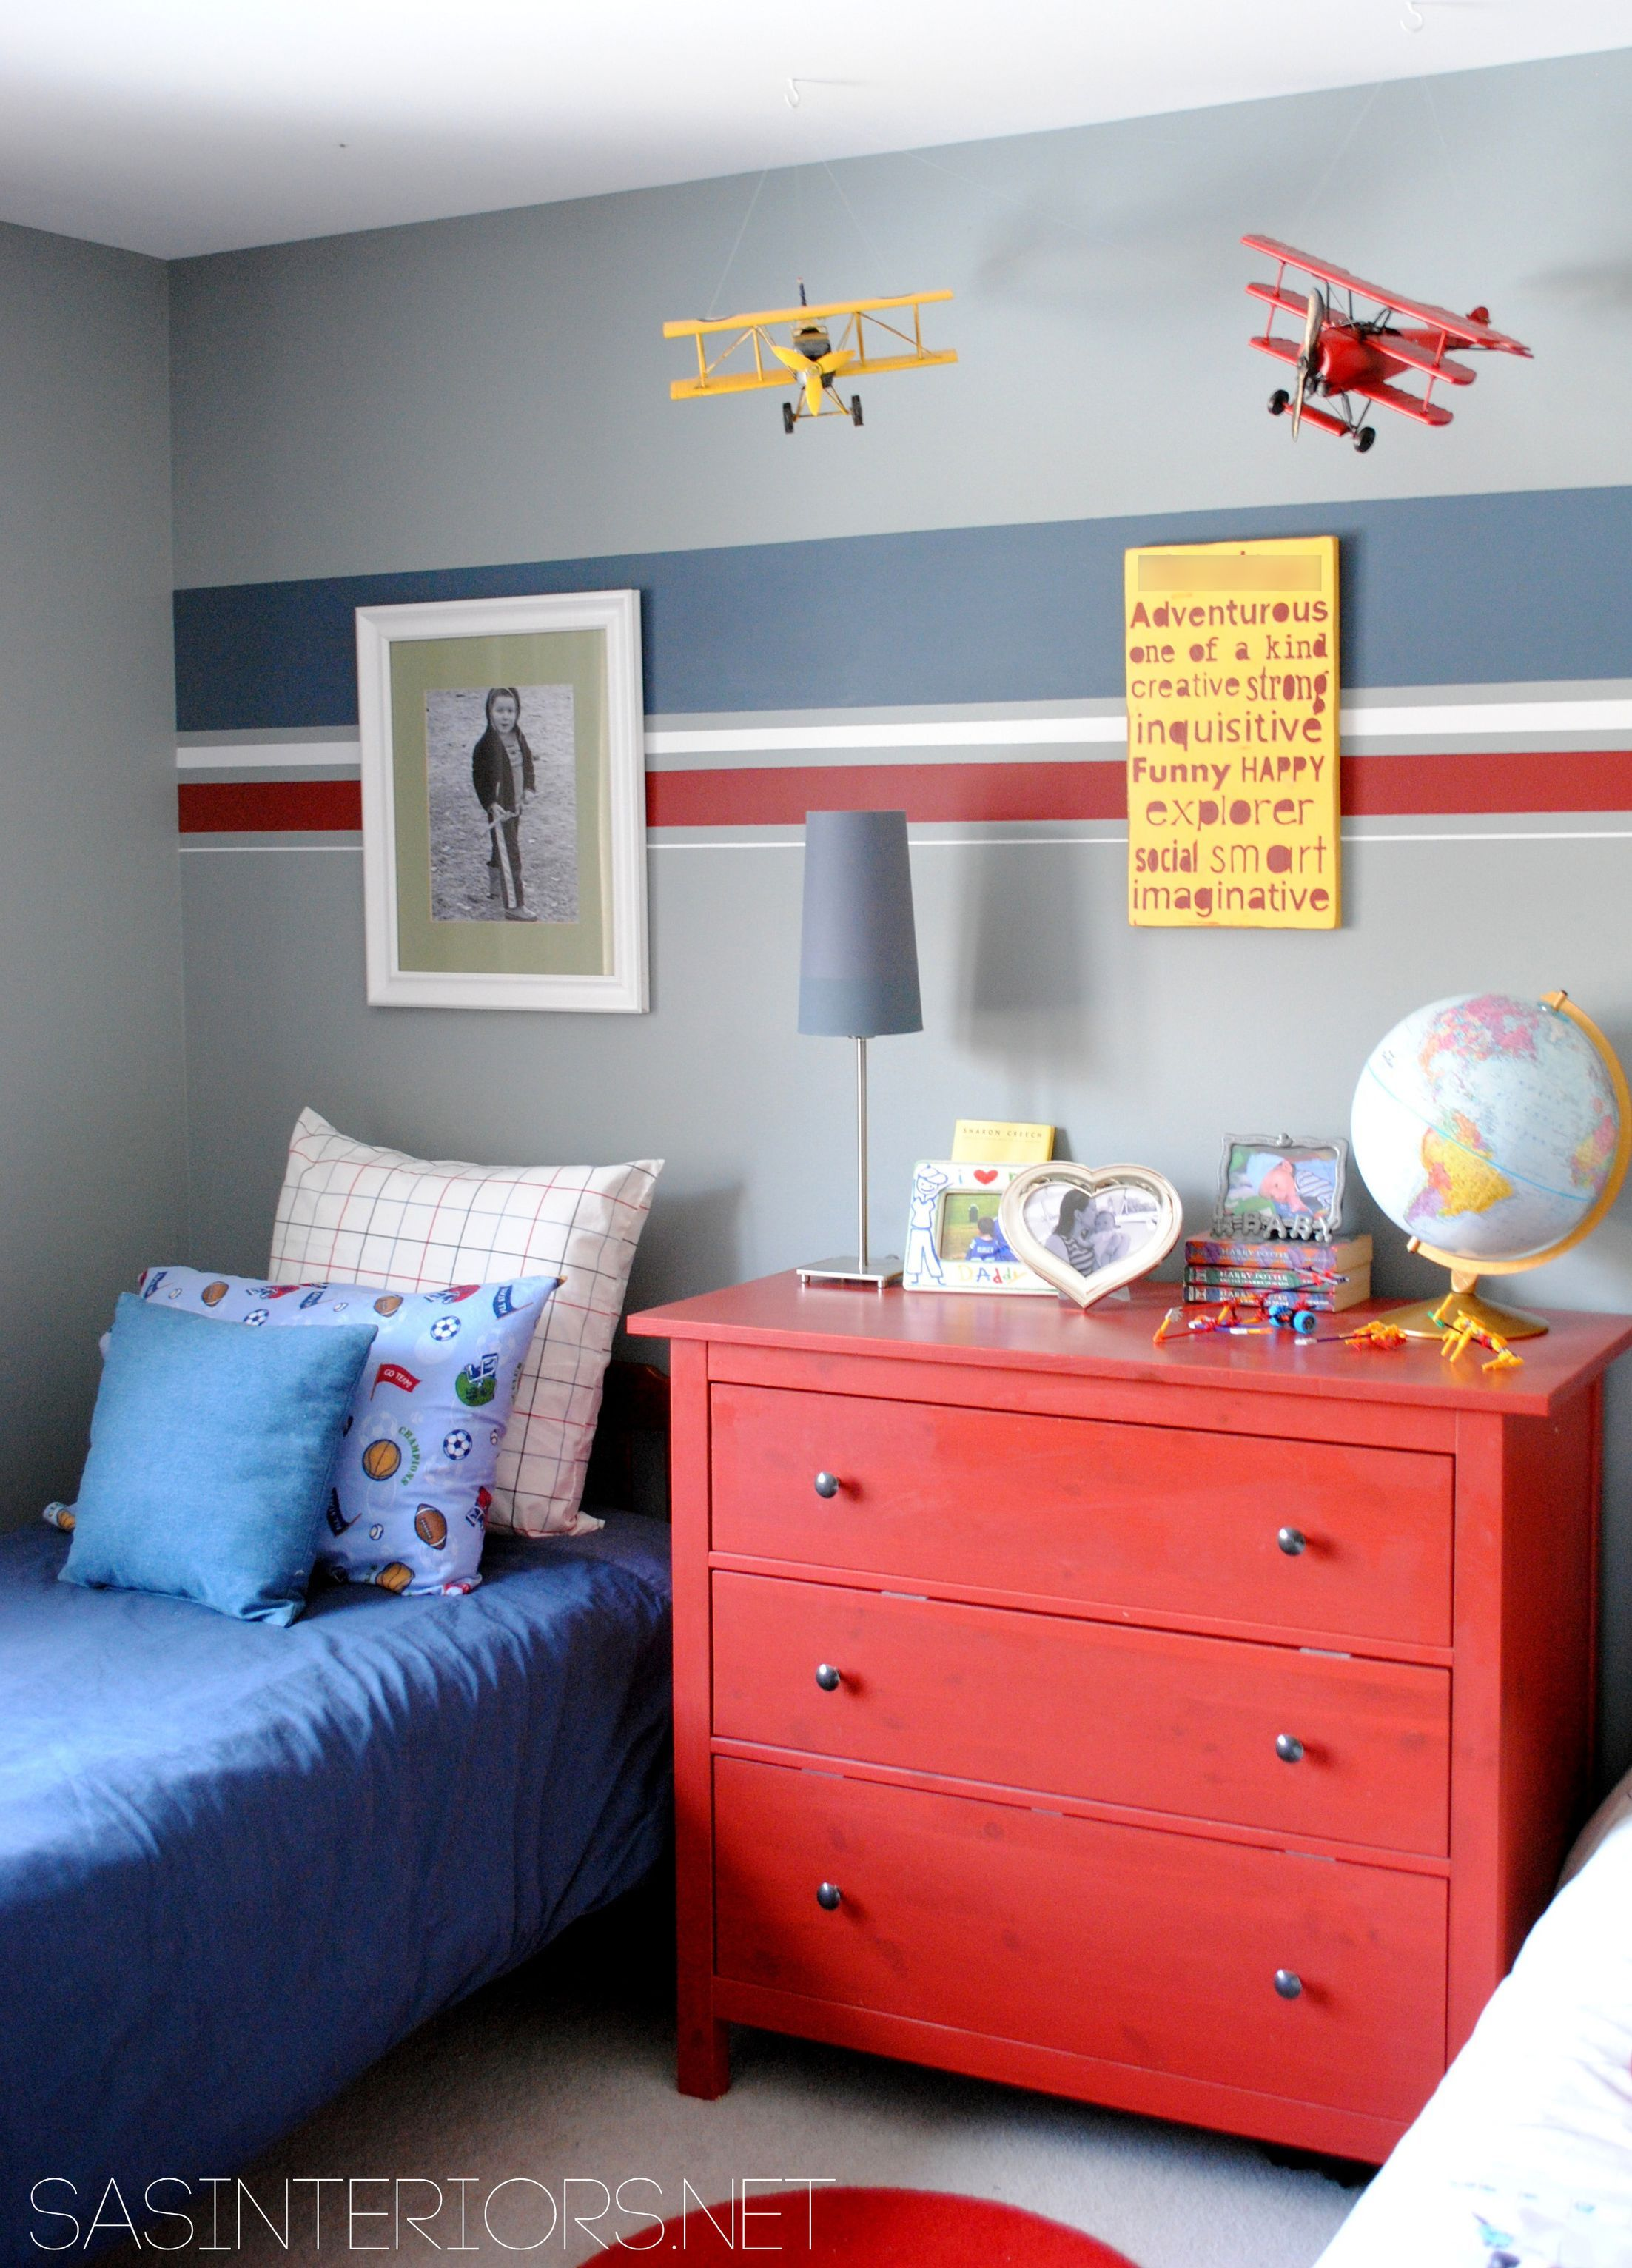 Boy Bedroom Children S Images By Sas Interiors Wayfair Cute Stripes Just One Wall For An Accent